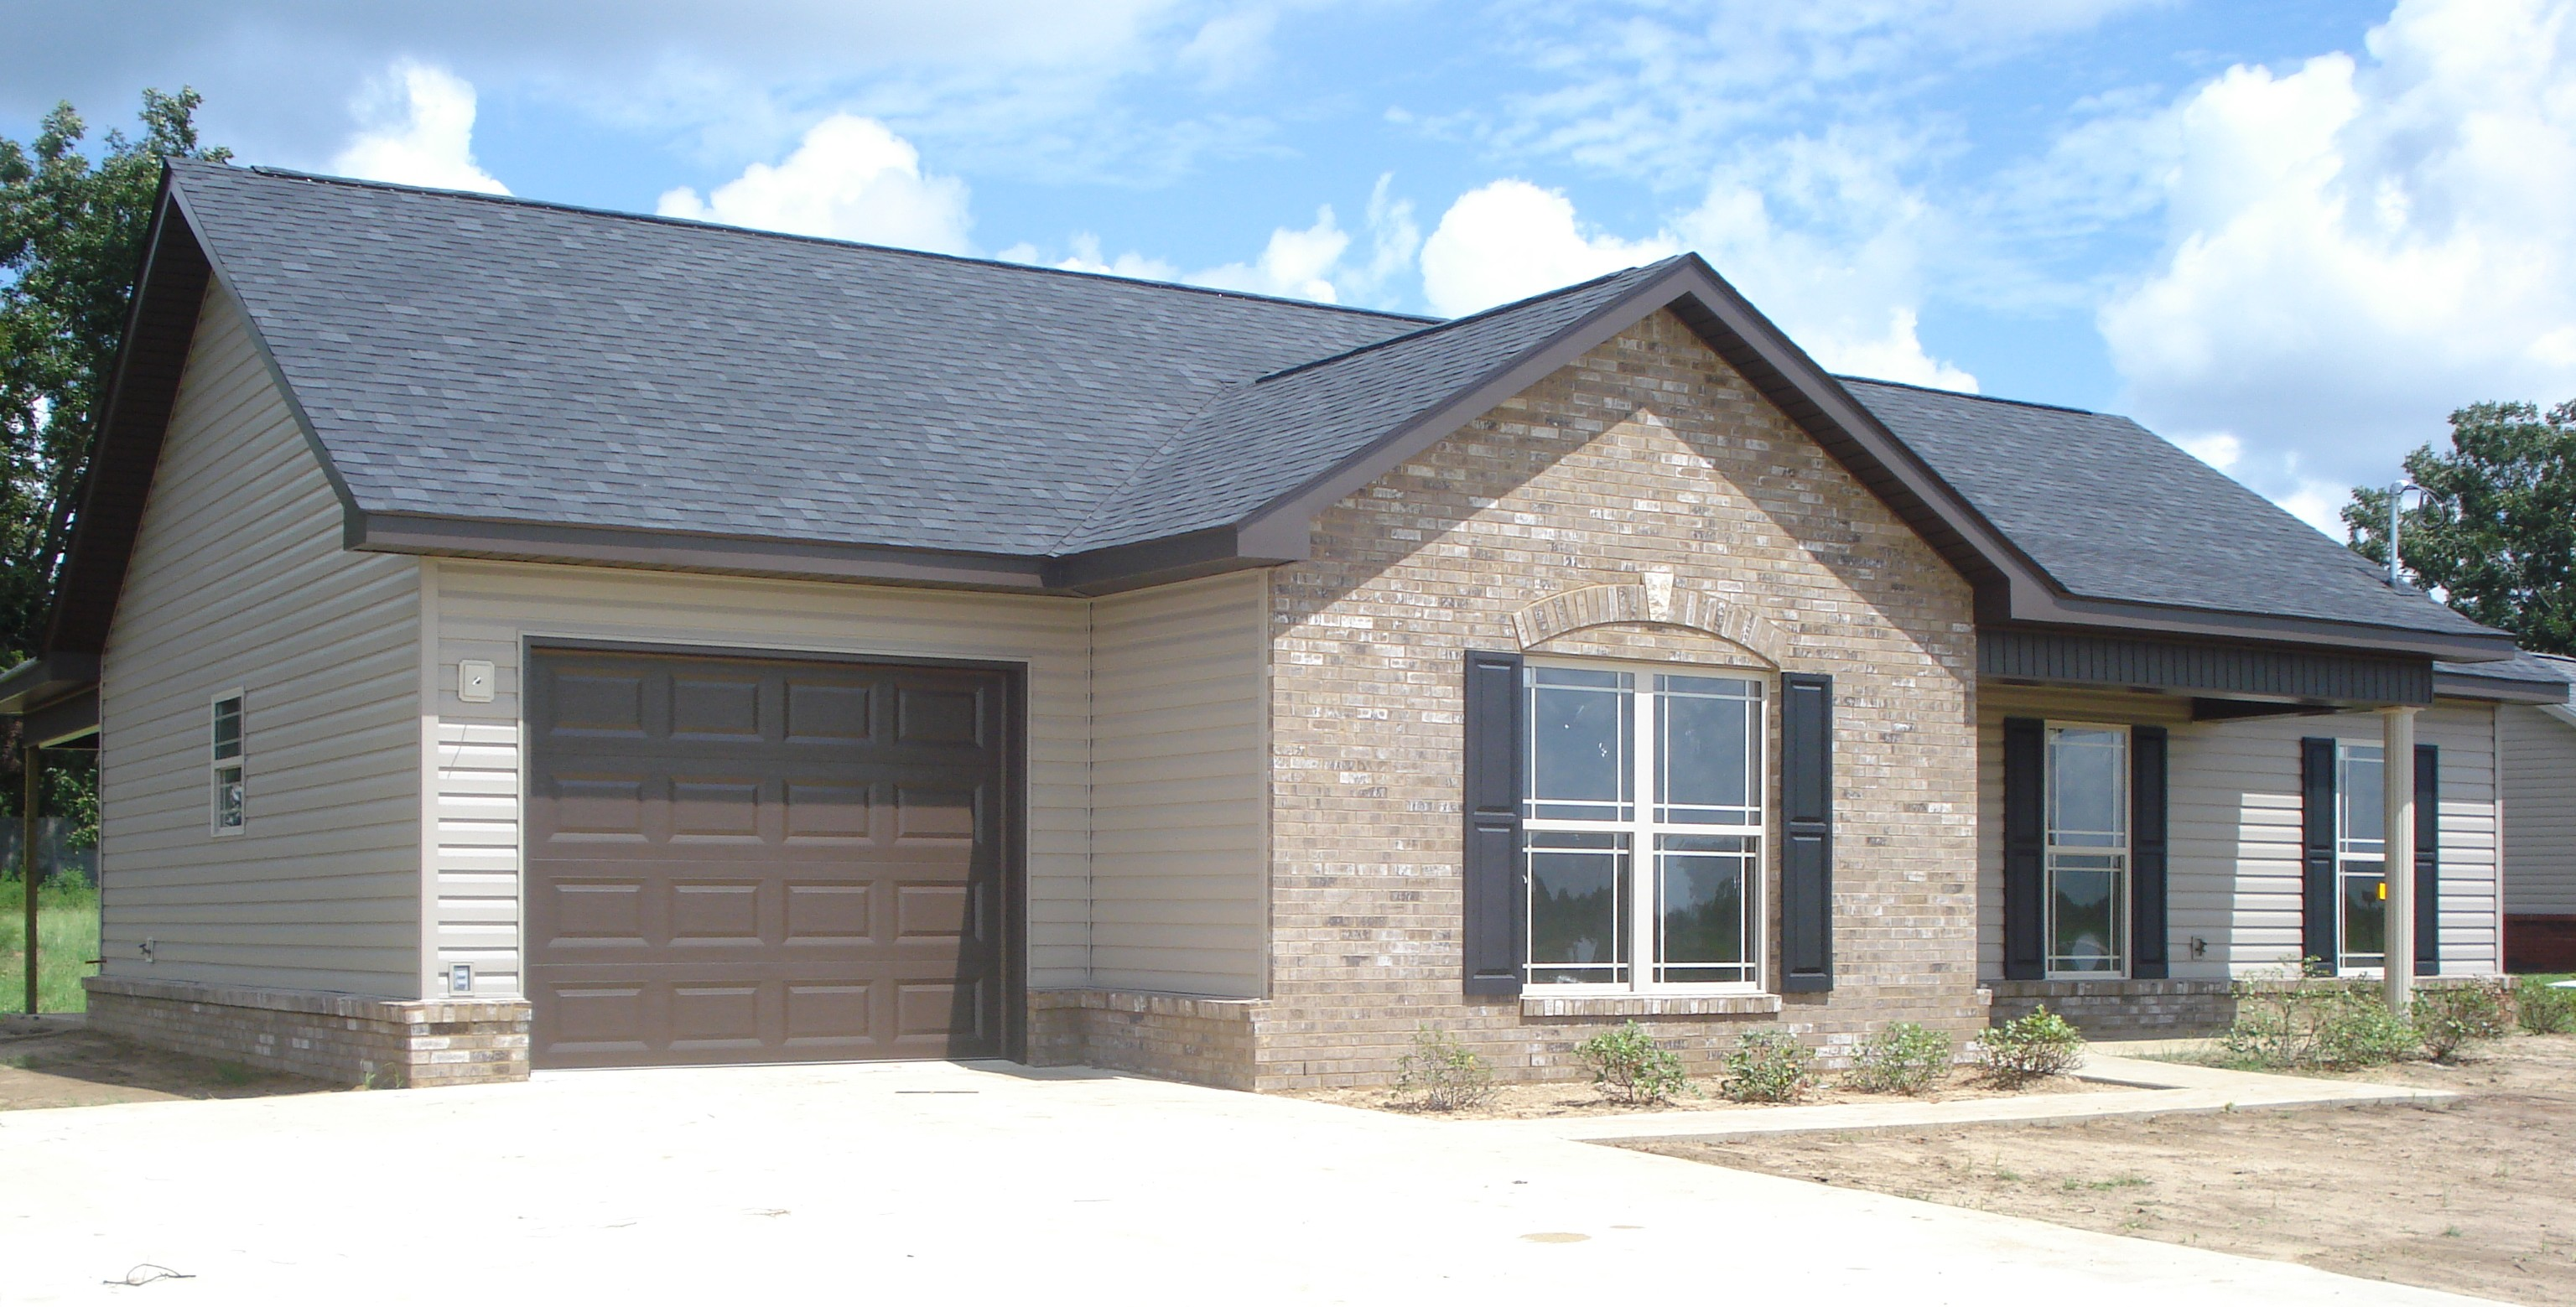 Brick Exterior: Earth Tone Exterior With Brick Accent